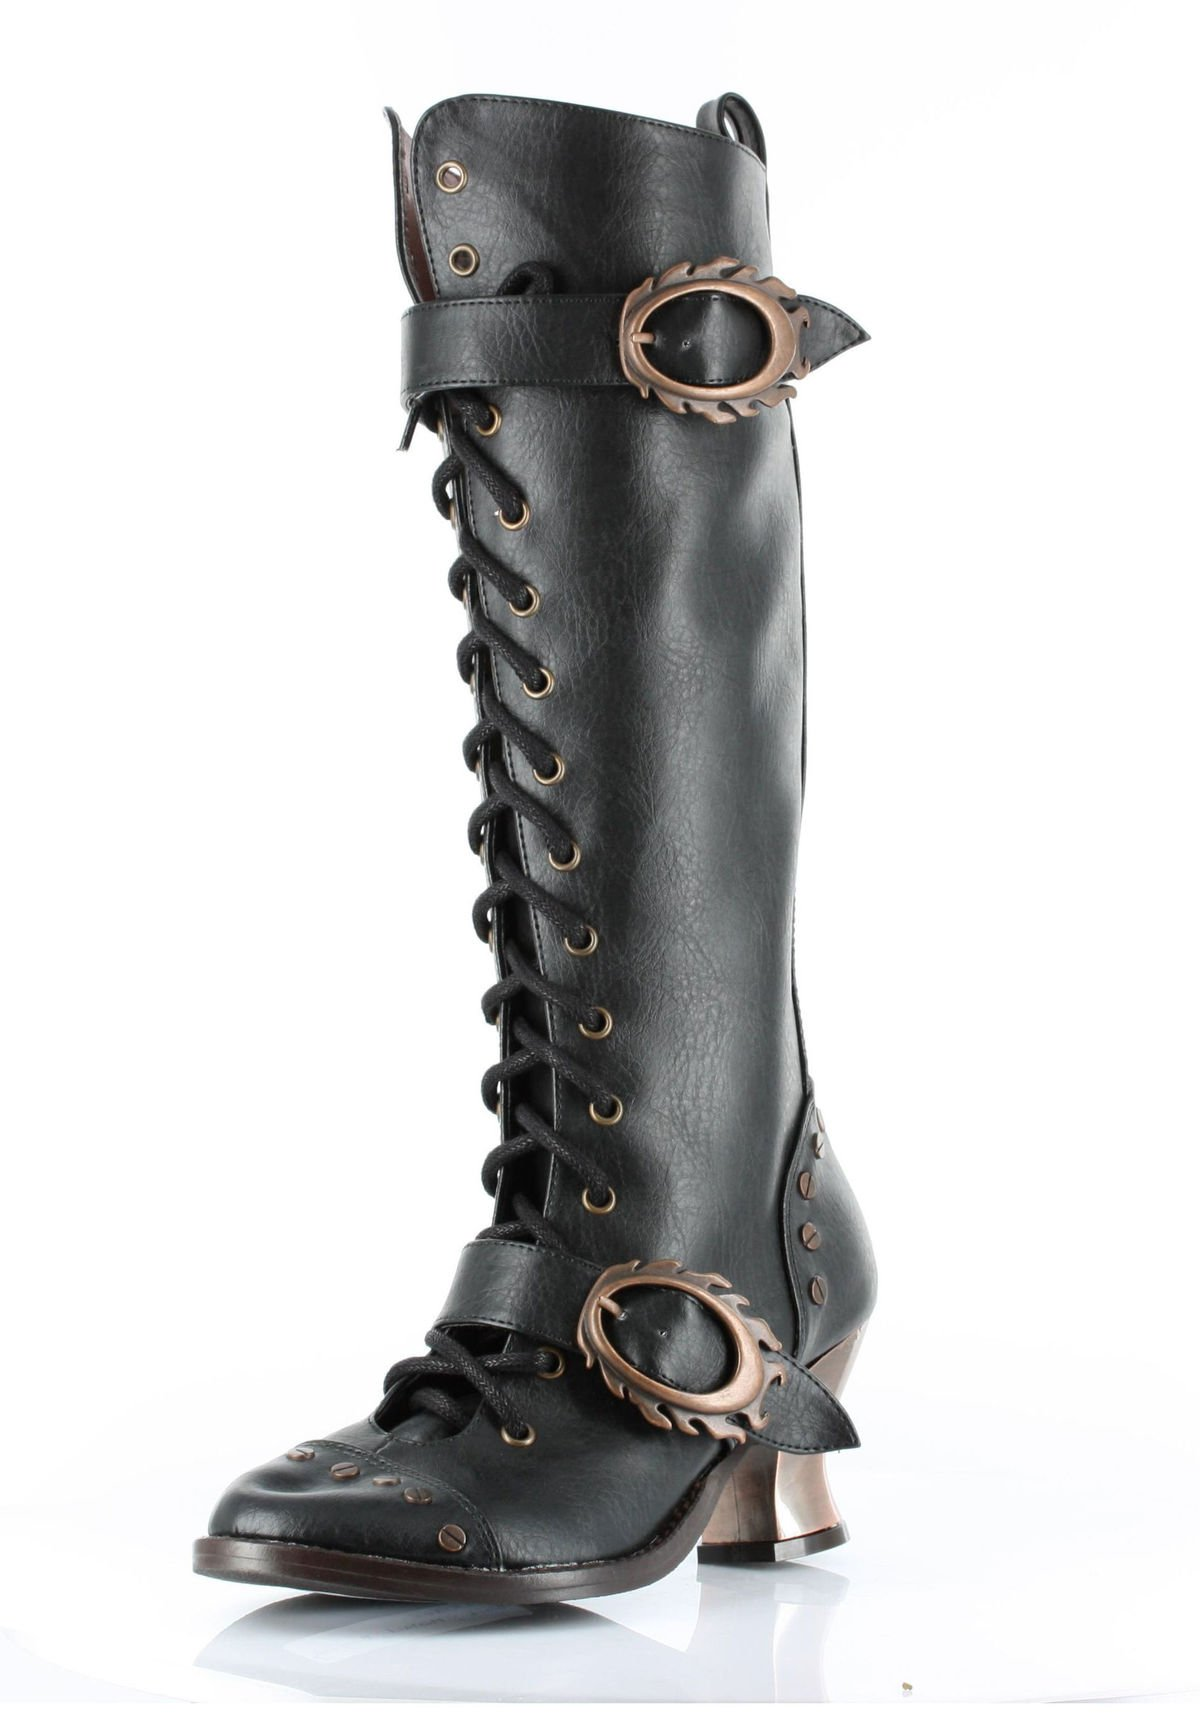 HADES Steampunk High Heel Womens Knee High Boot Studs Retro VINTAGE Black-11